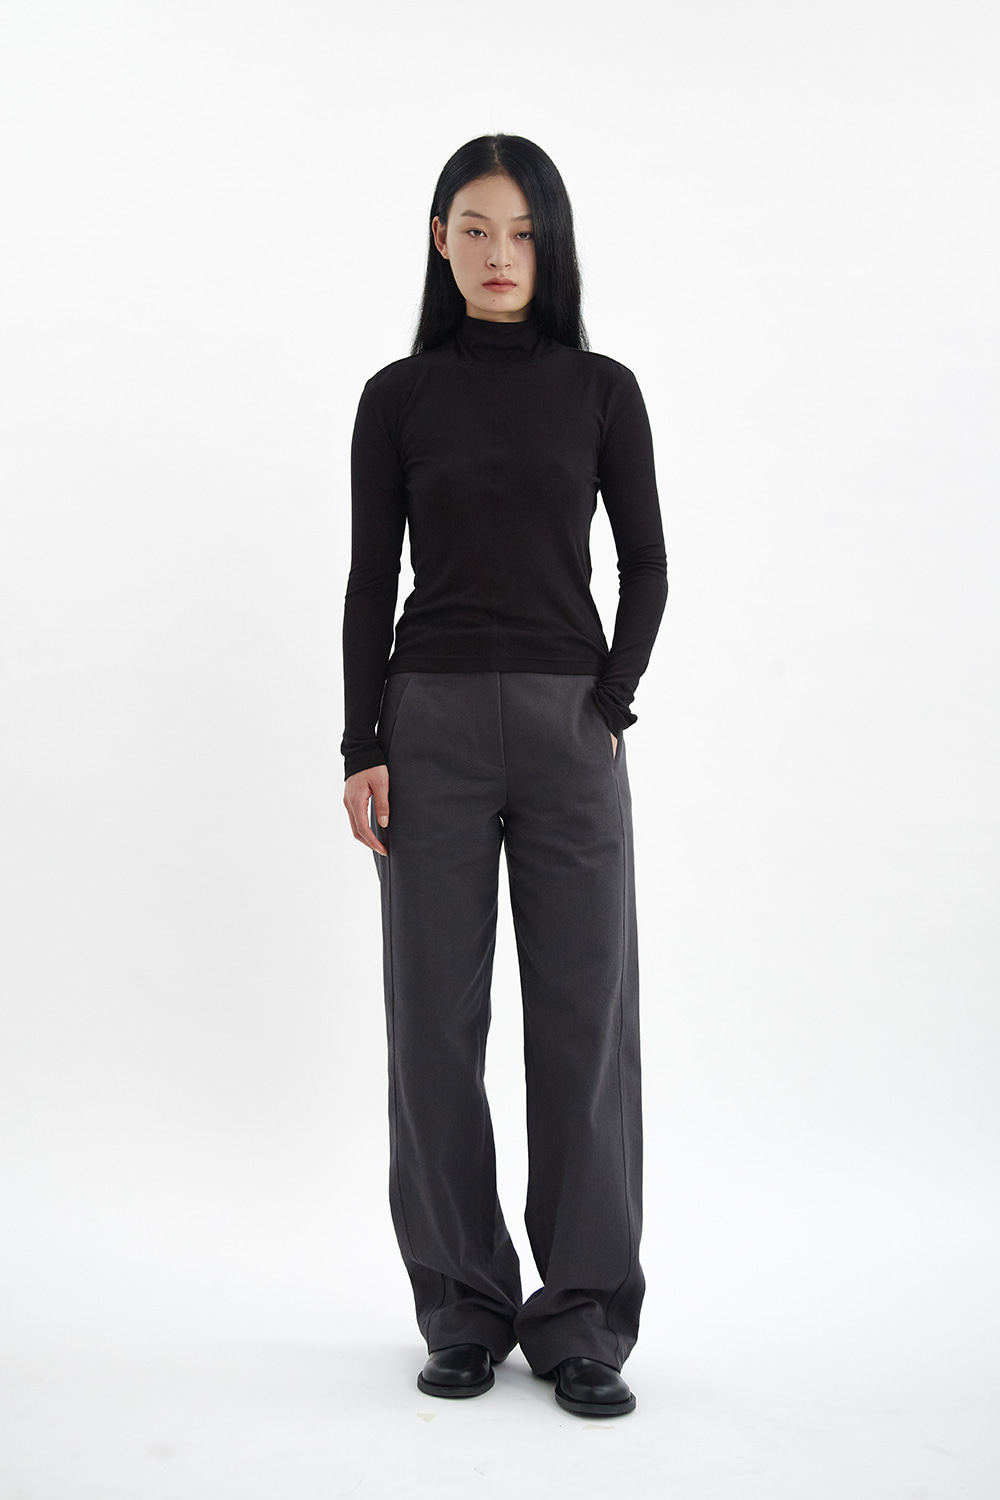 Line Silhouette Pants Women JA [Charcoal Gray]